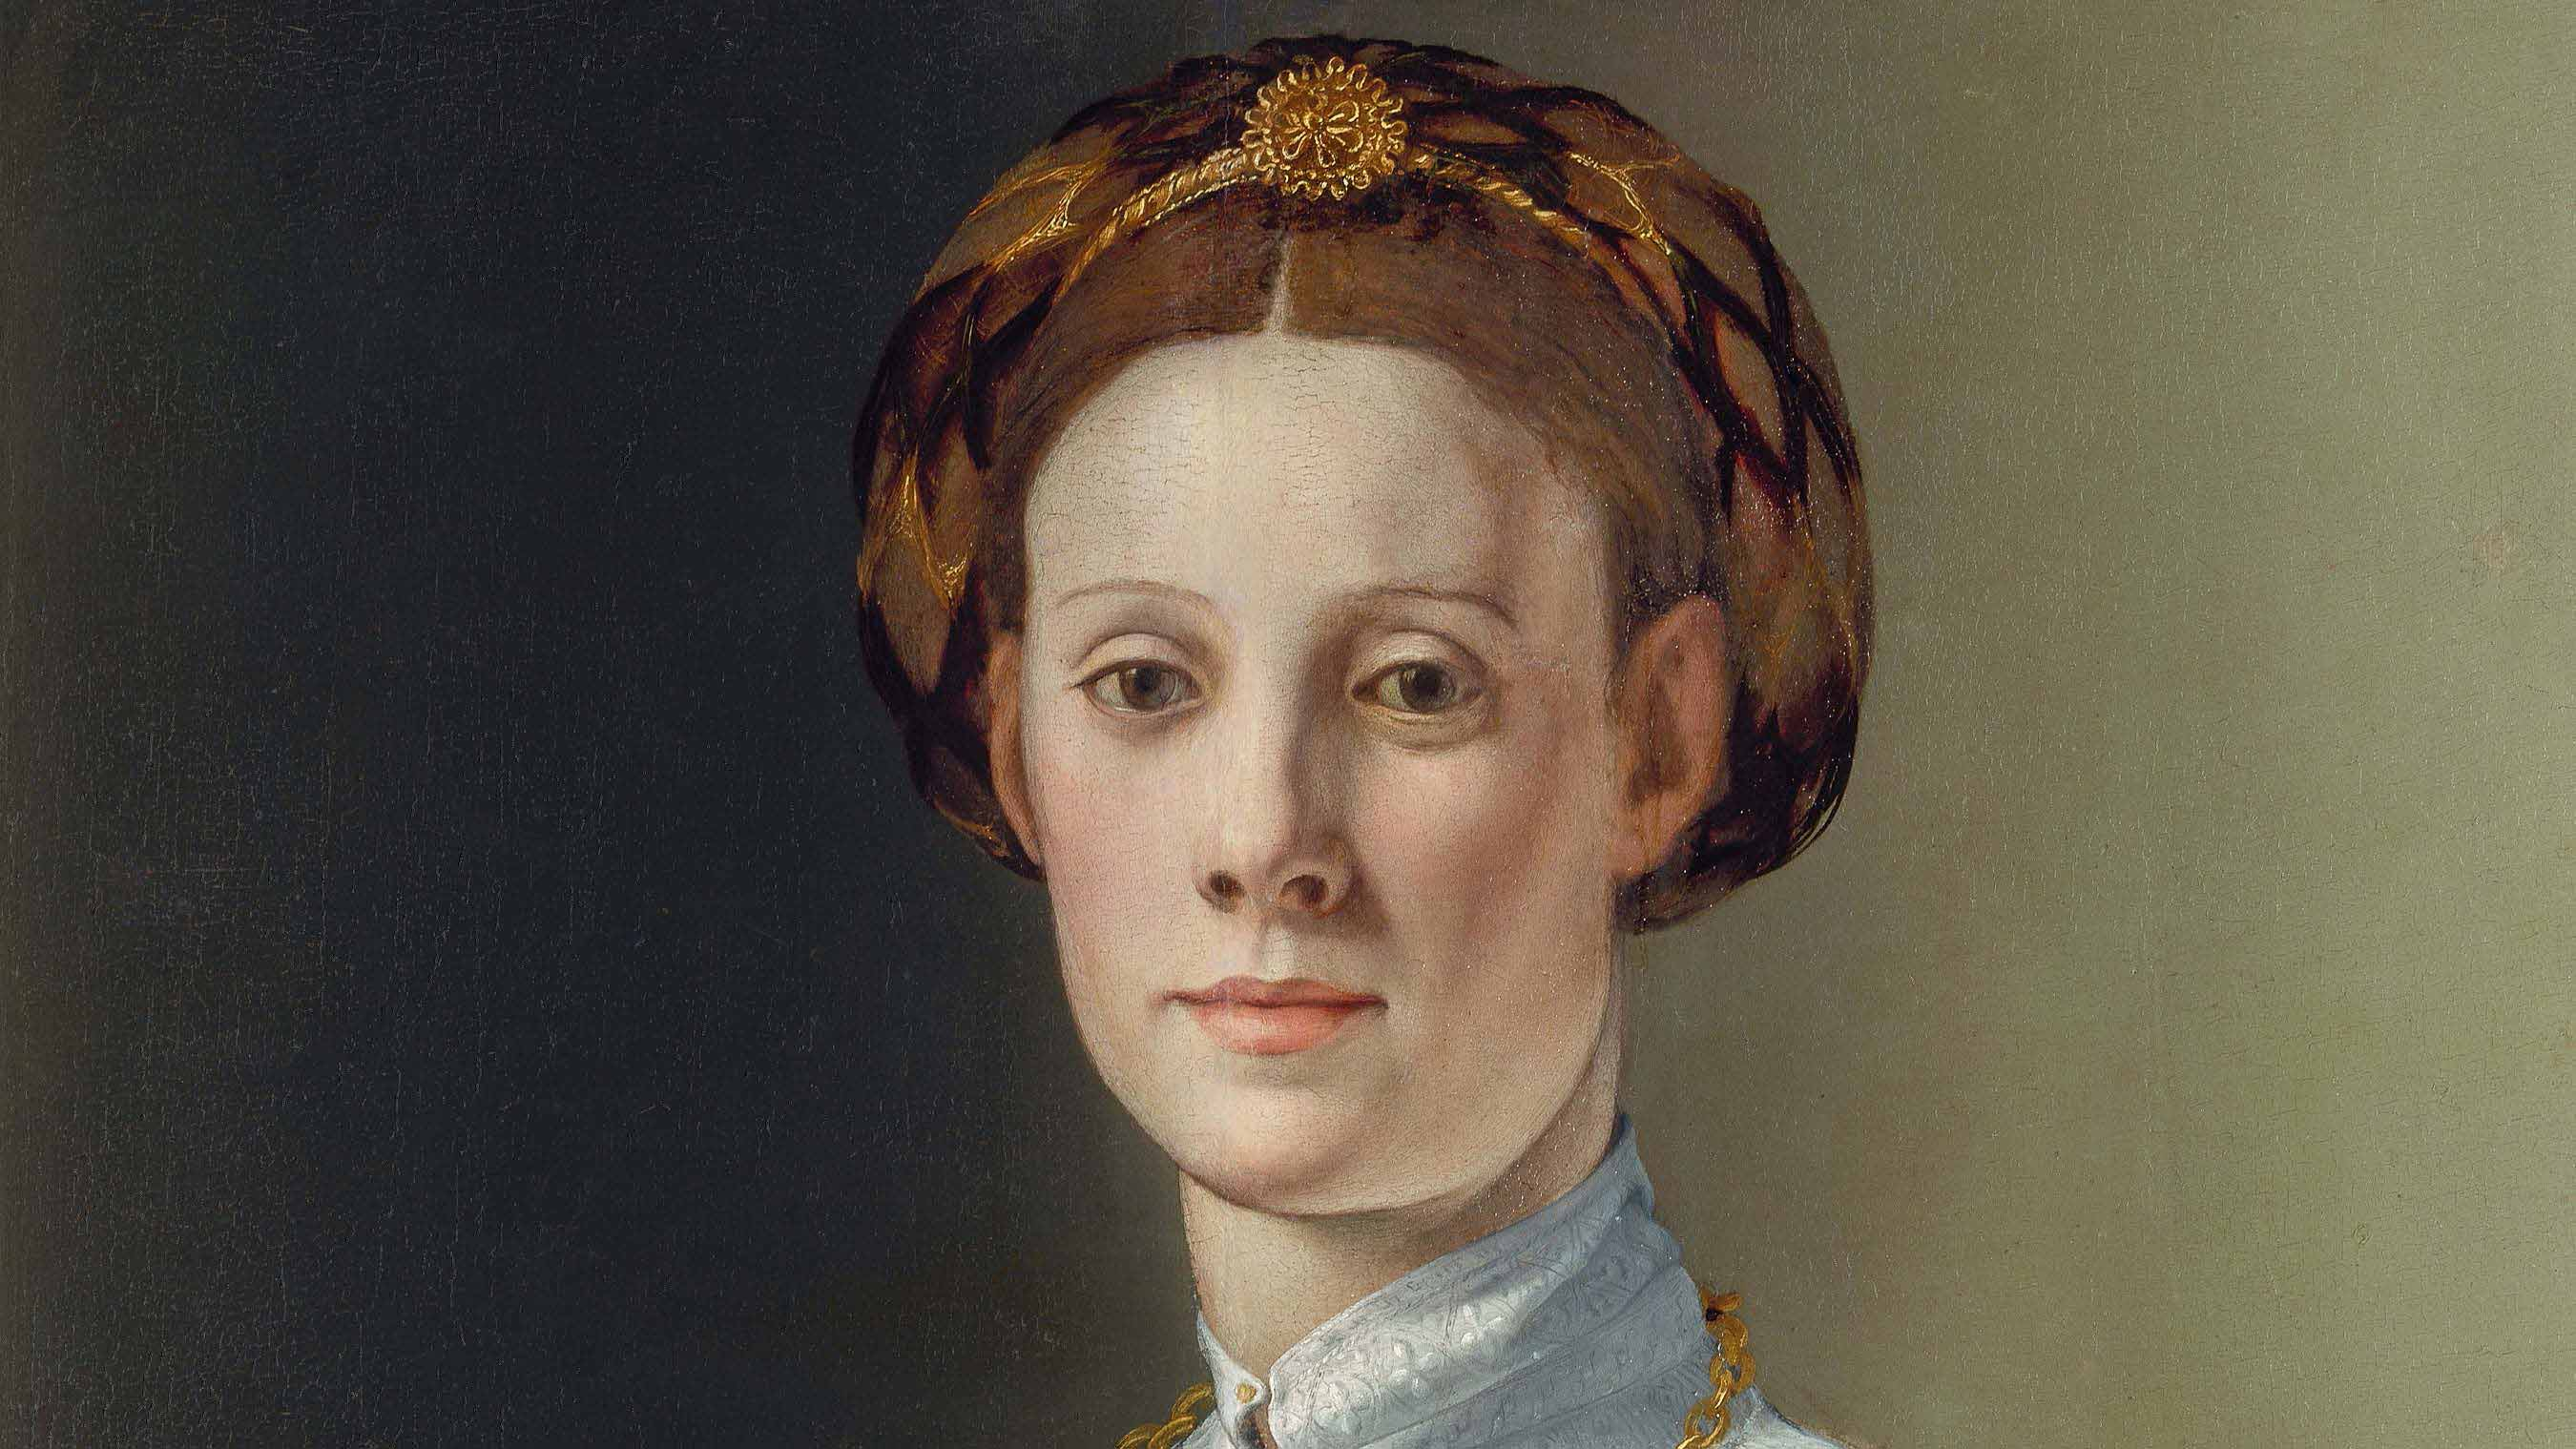 Detail from Portrait of a Woman with a Lapdog by Branzino. A painting of an ornately dressed woman with a small dog in her lap.